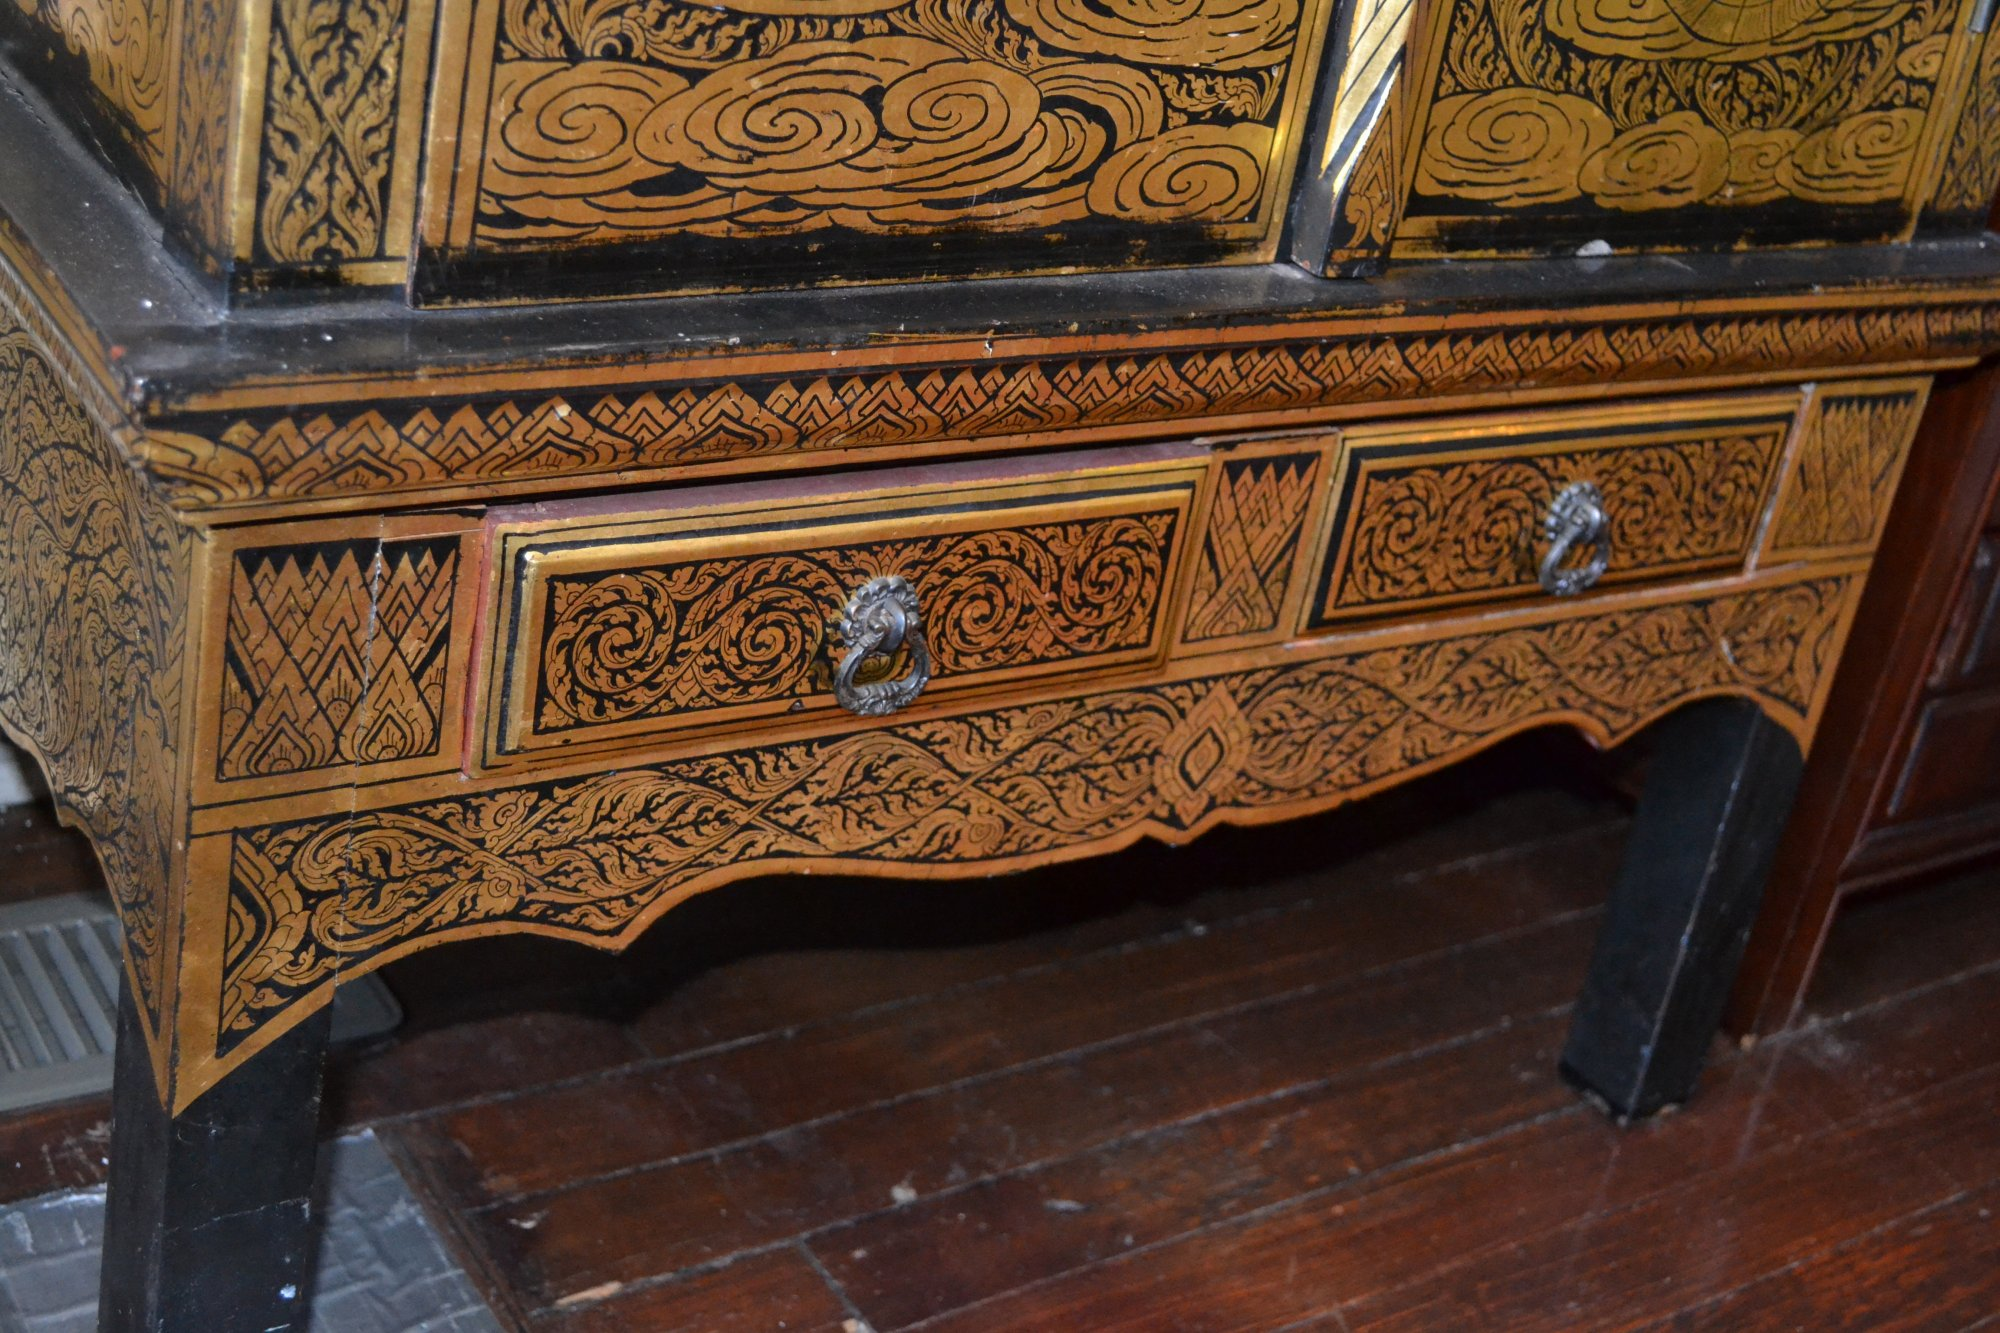 19th Century Thai Monastery Chest Gold and Black Lacquer Chest 2 doors over 2 drawers H. 48 X W. 27 X D. 18